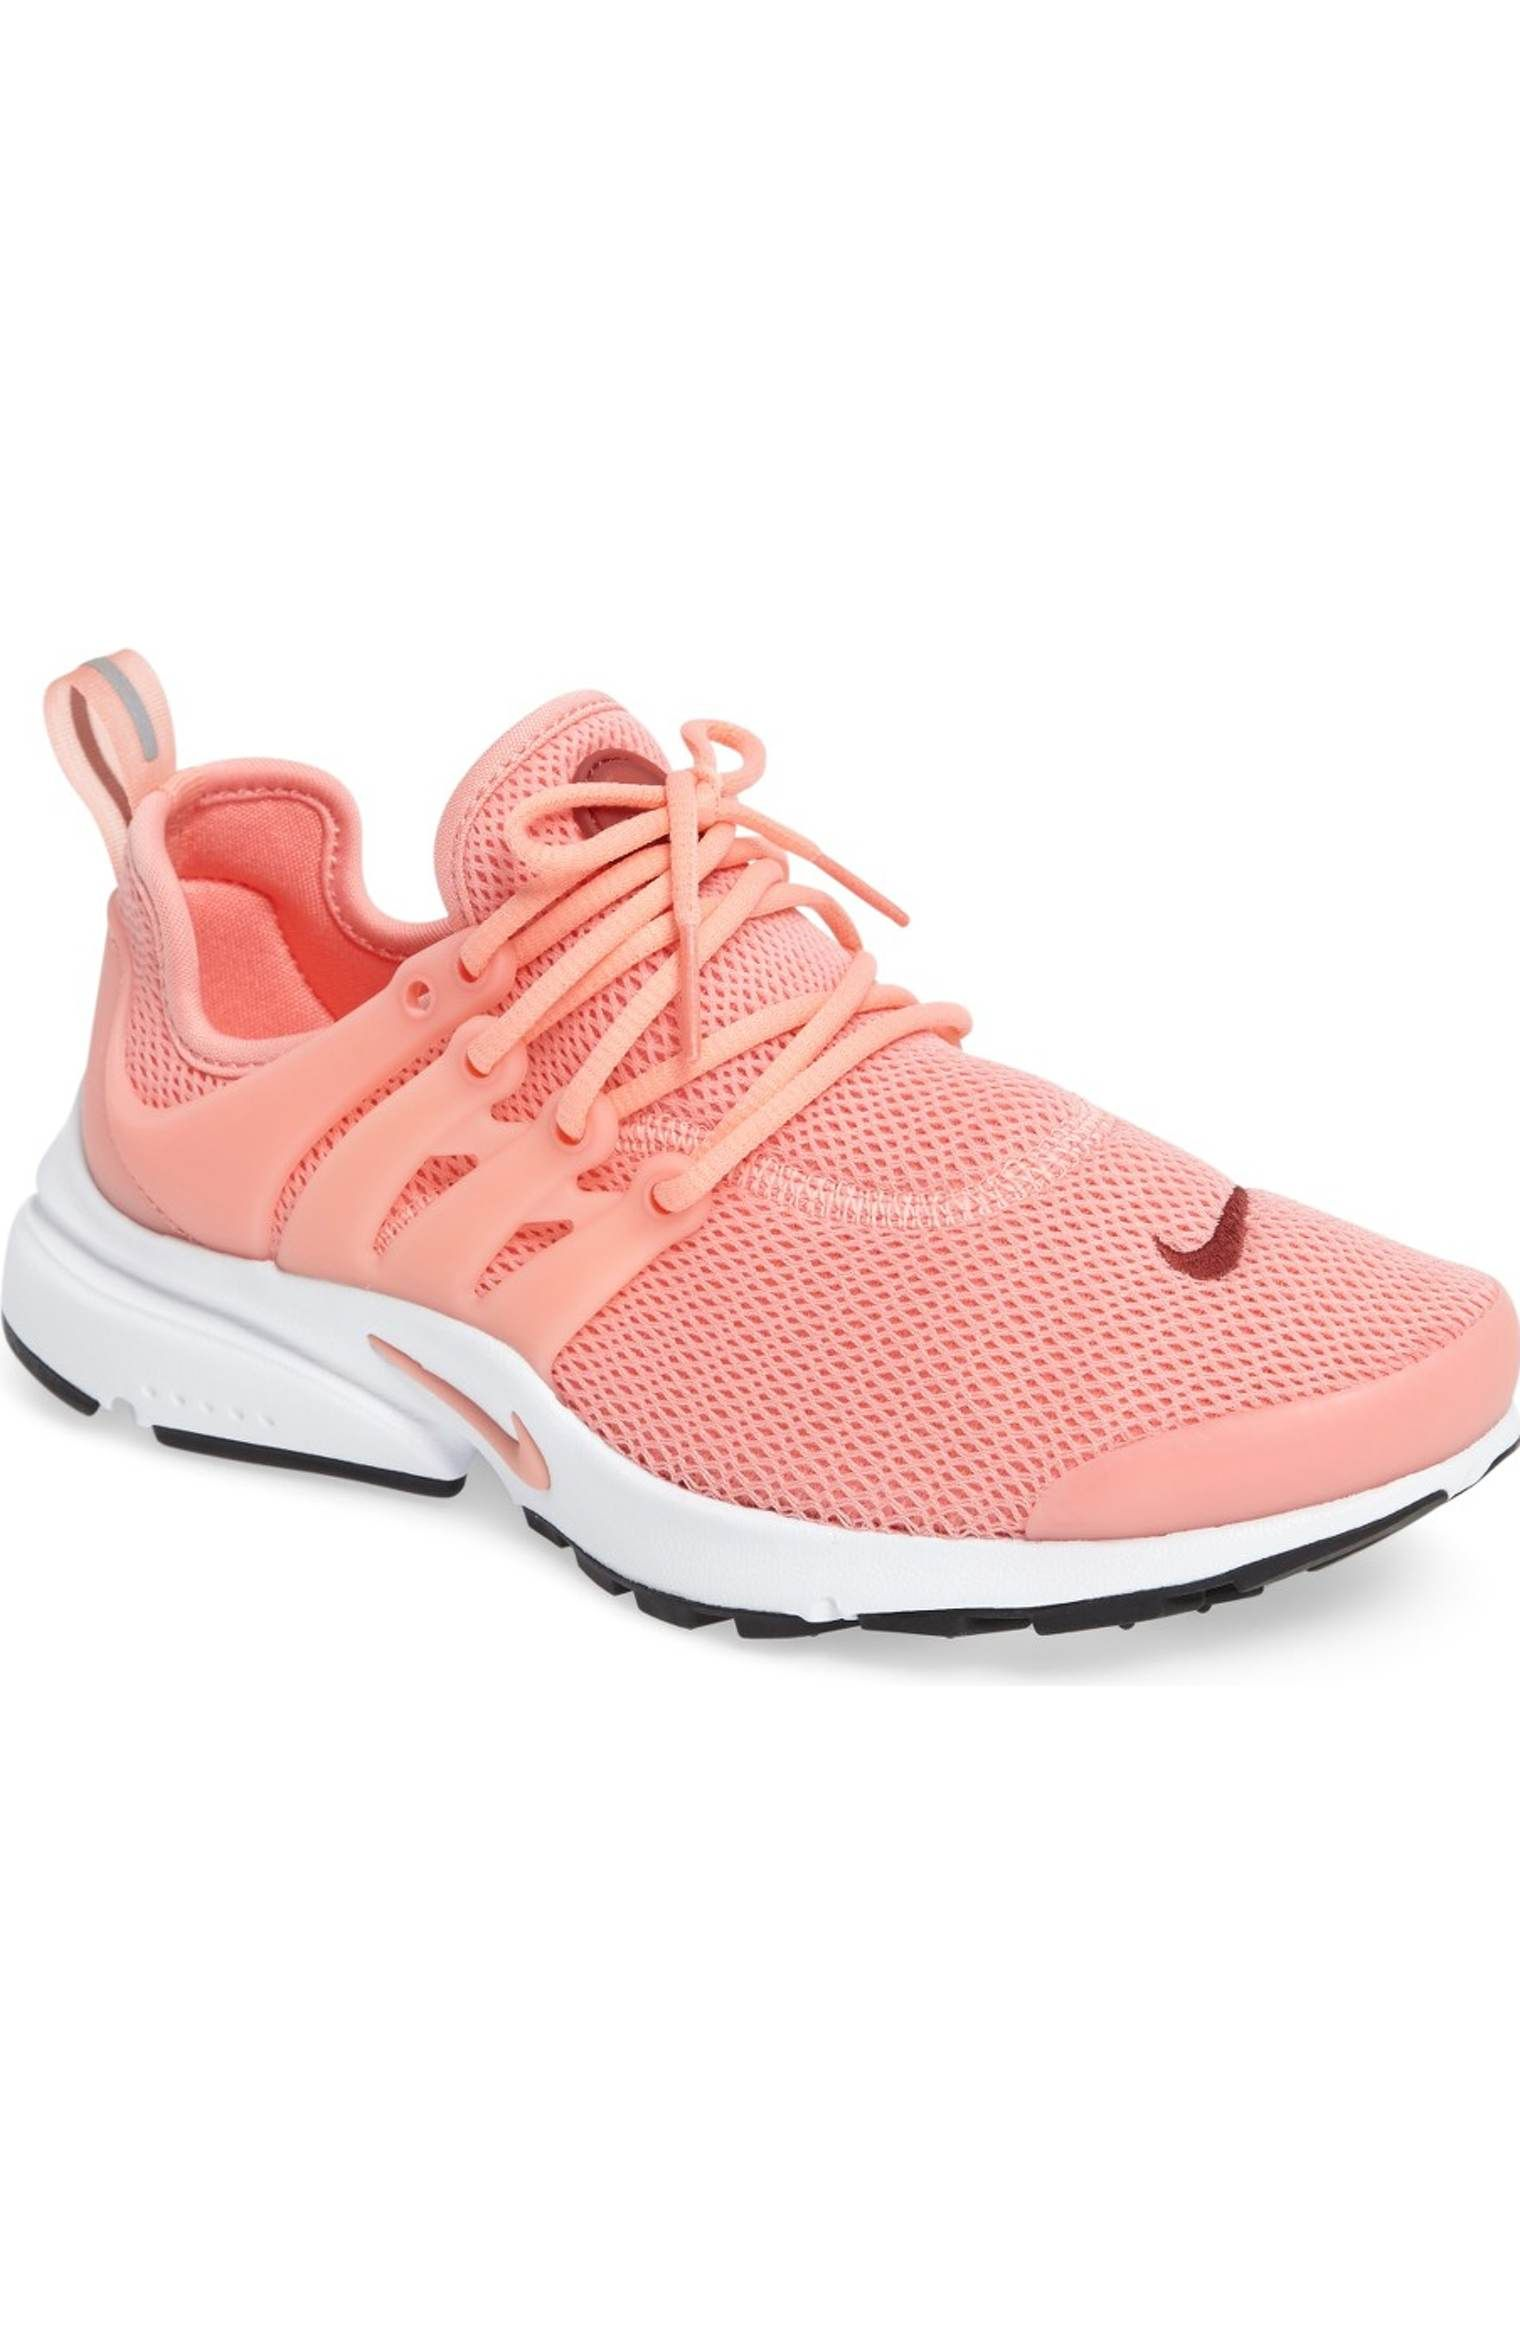 competitive price 67b6e 2d638 Nike Shoes on | fashion queens ♡ in 2019 | Presto sneakers ...